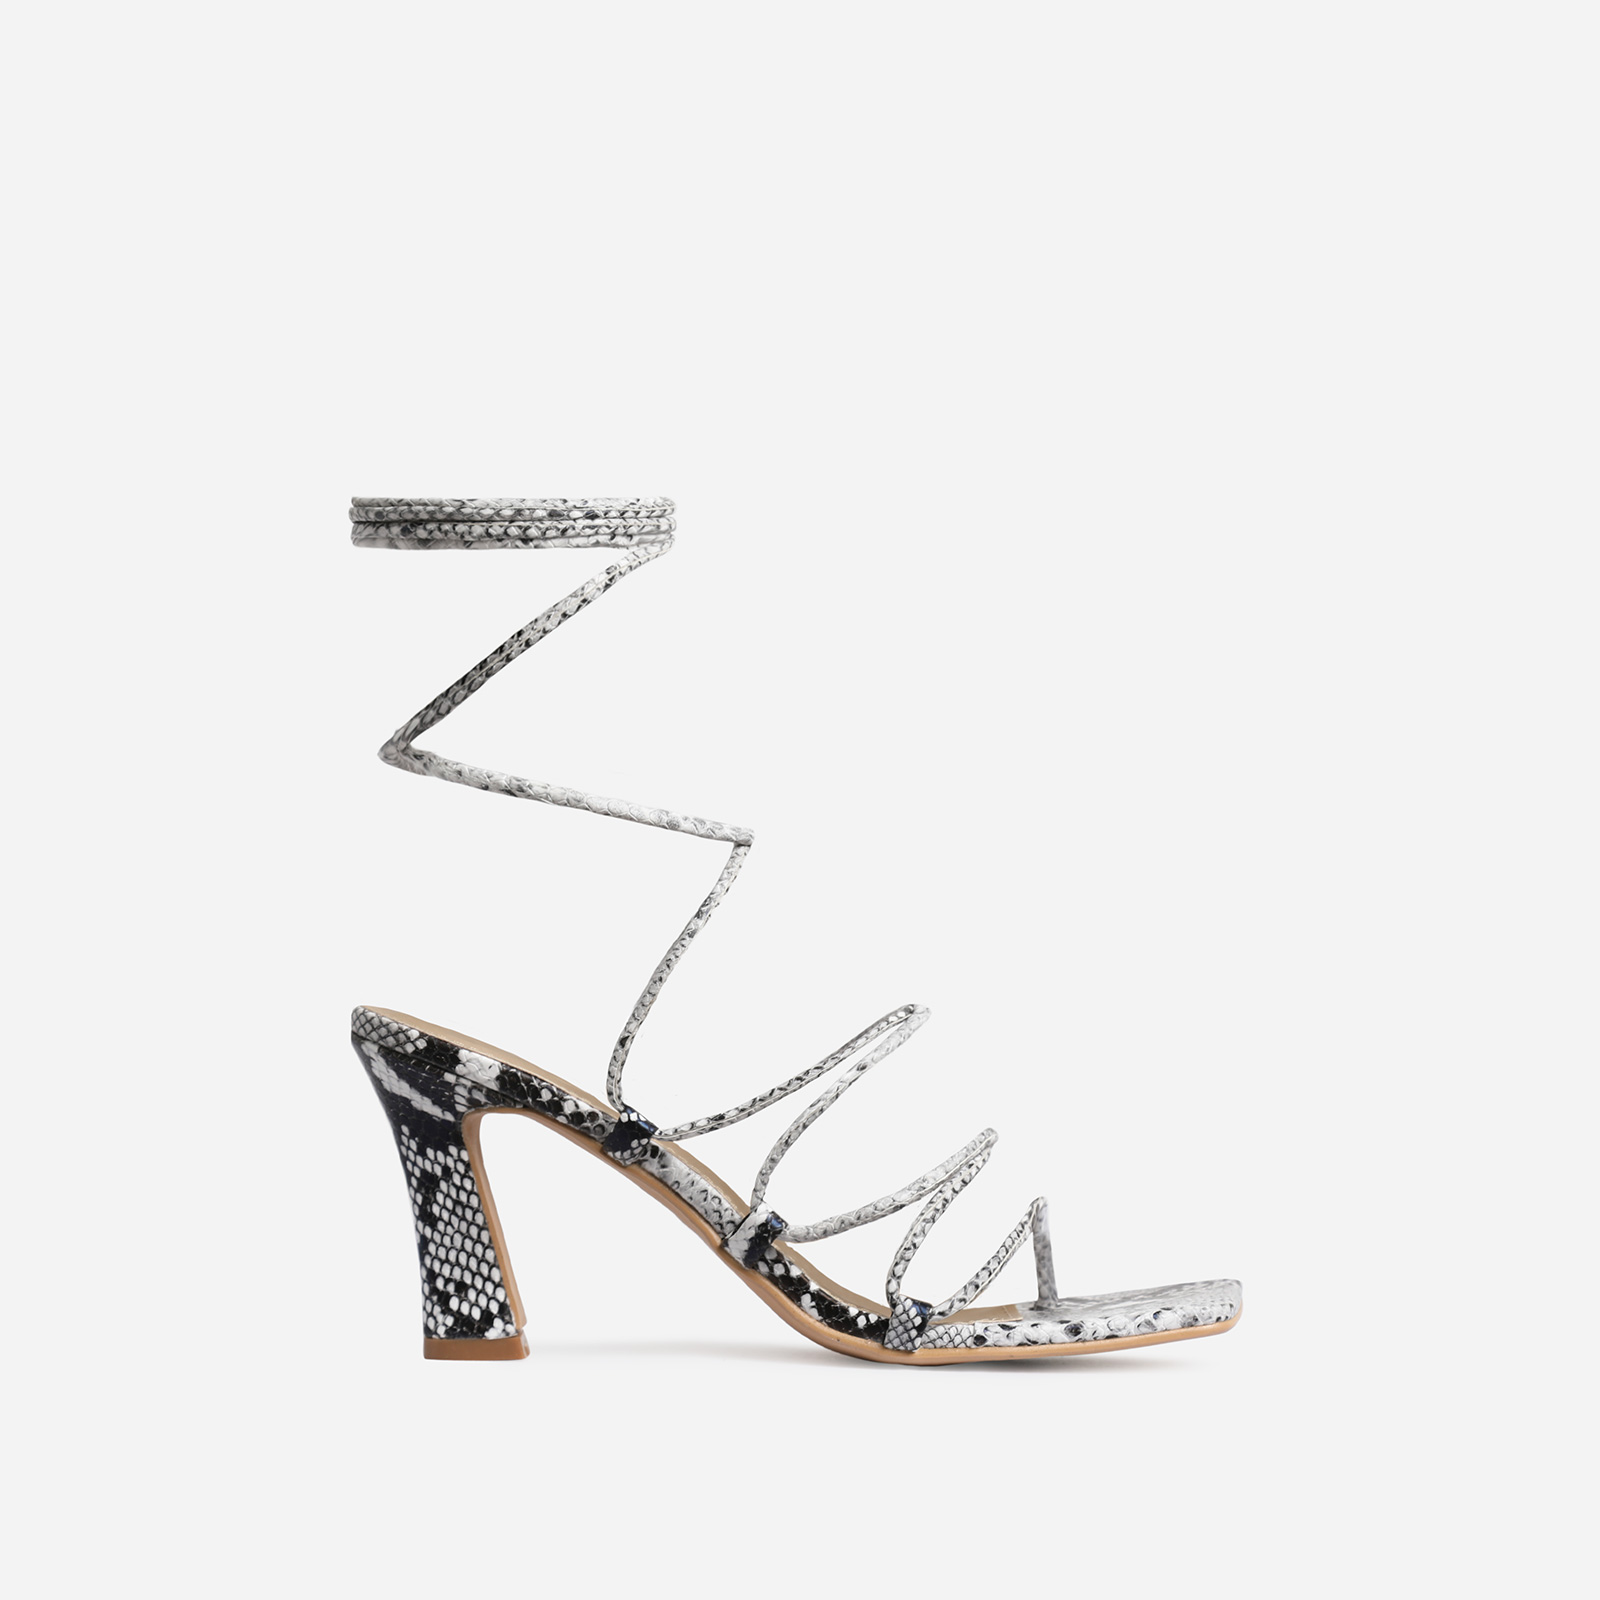 Trixie Square Toe Lace Up Kitten Heel In Grey Snake Print Faux Leather